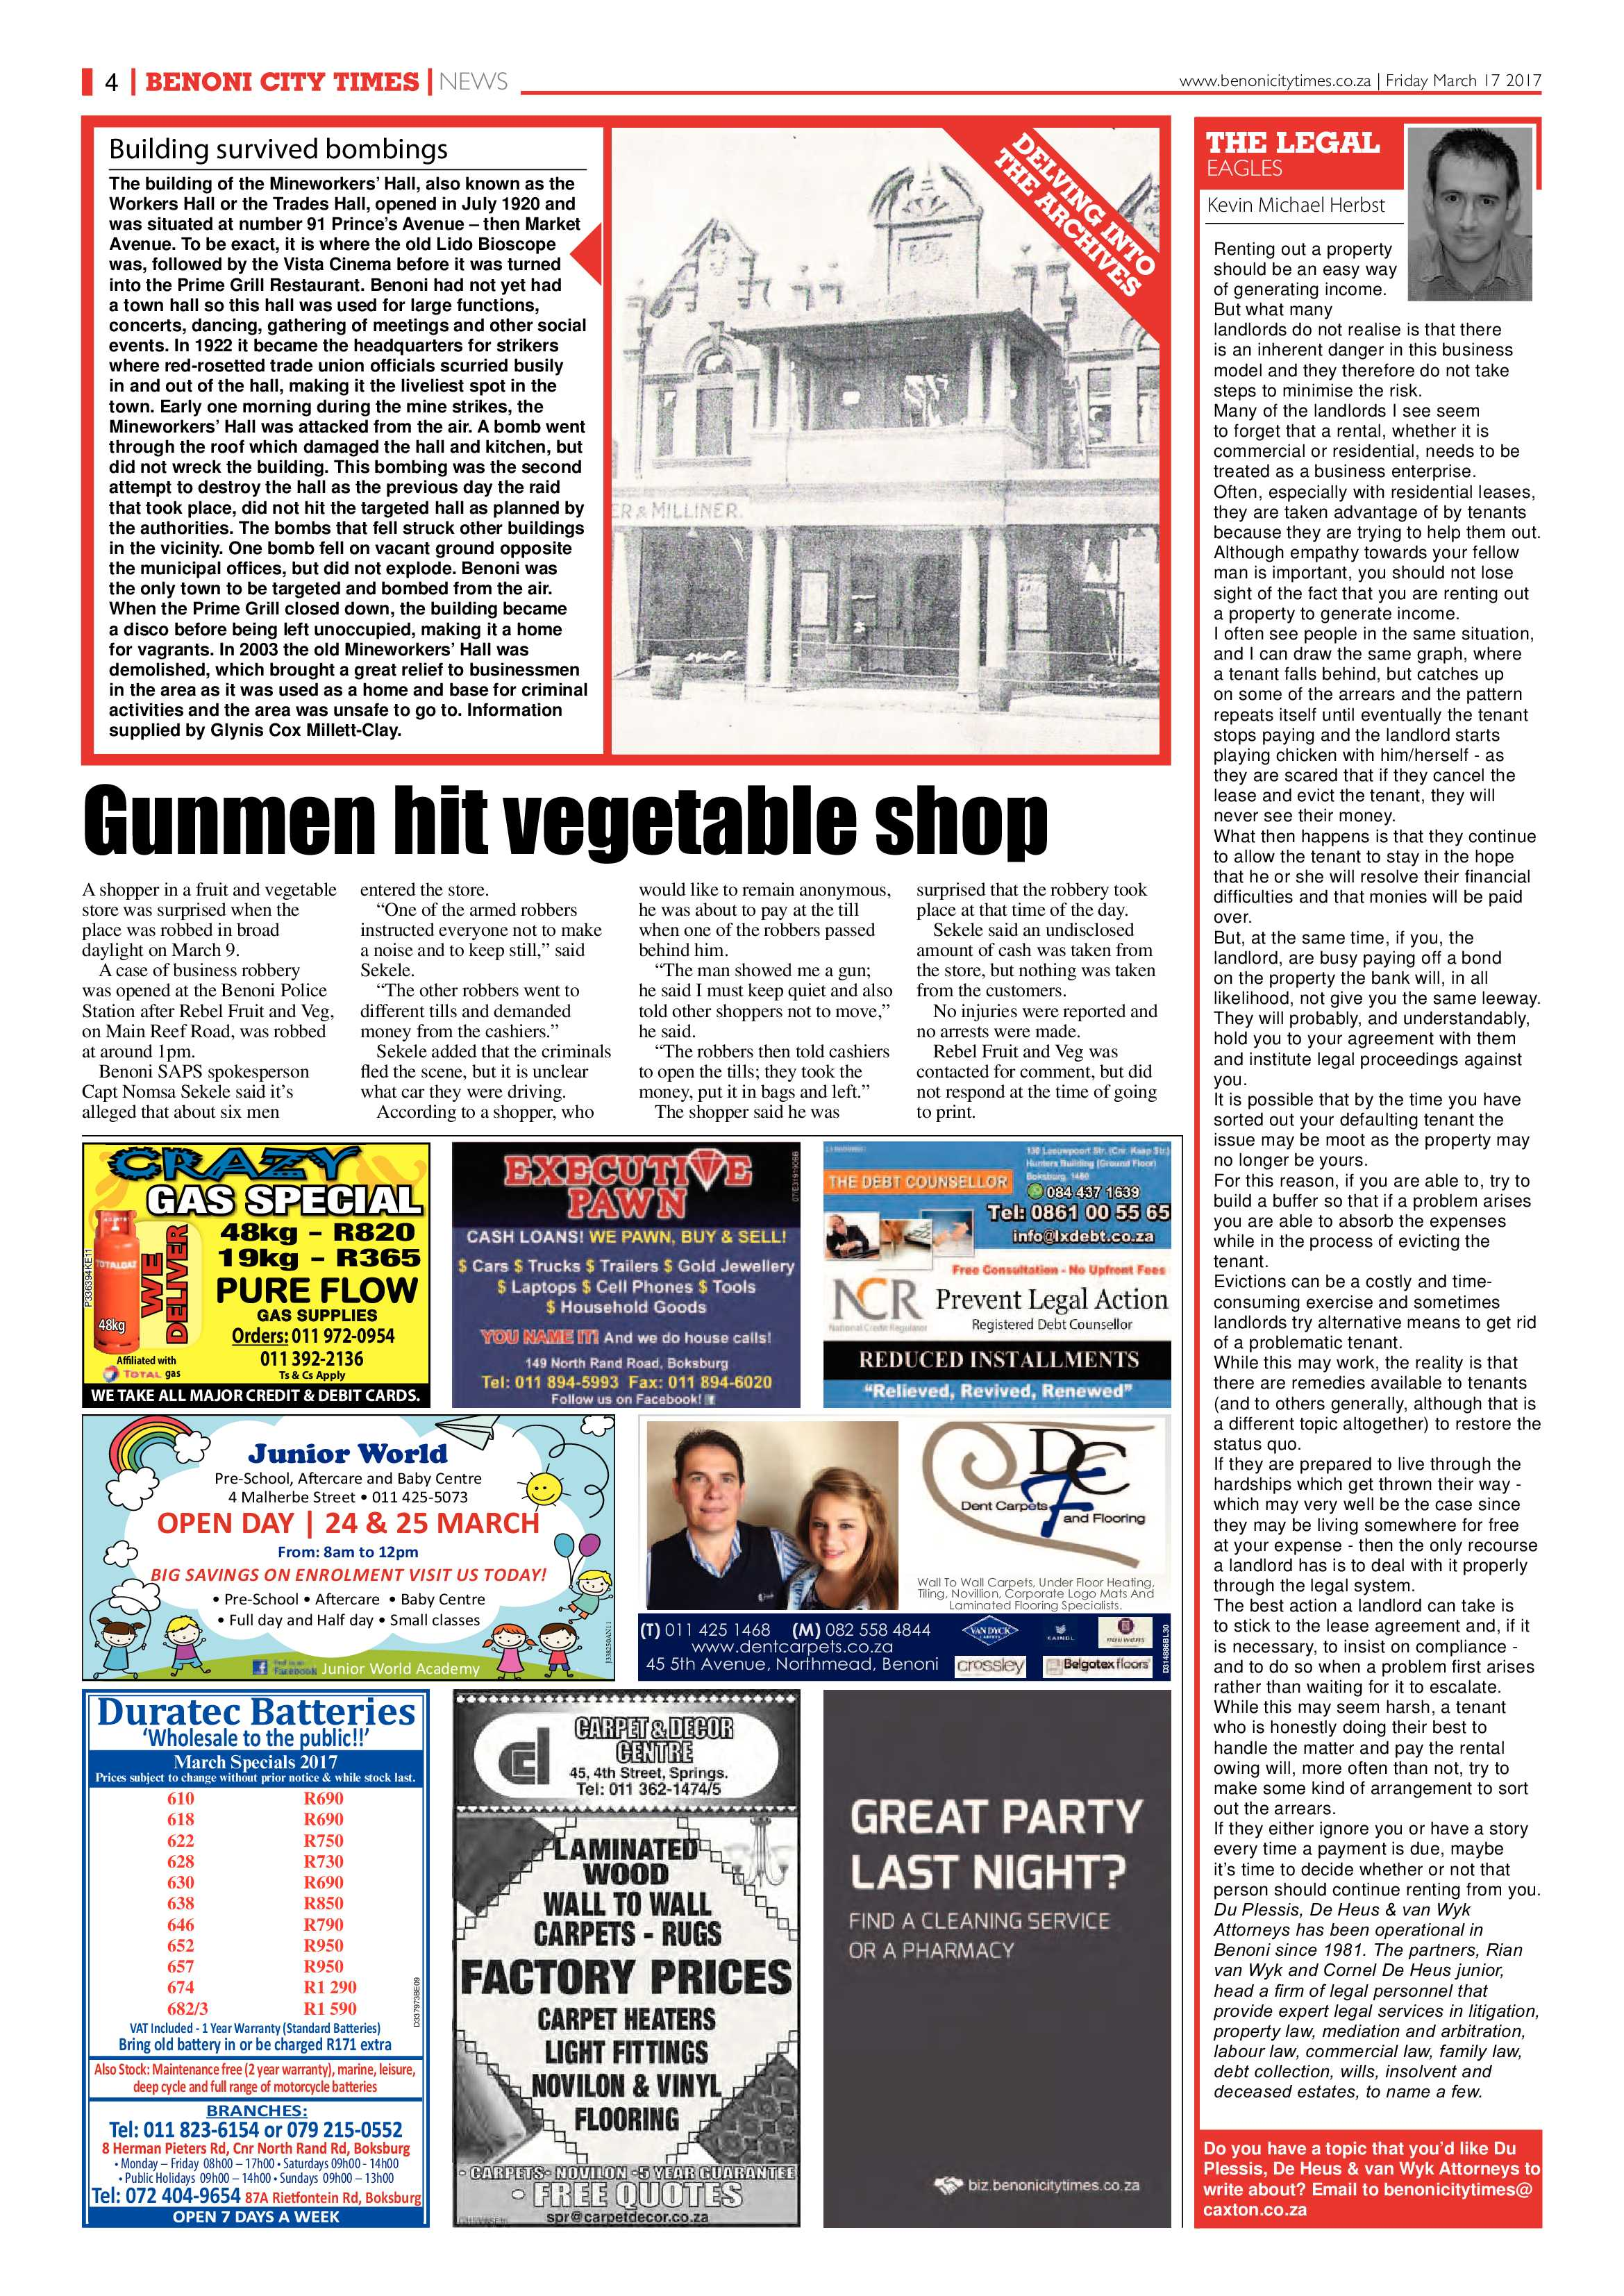 benoni-city-times-16-march-2017-epapers-page-4